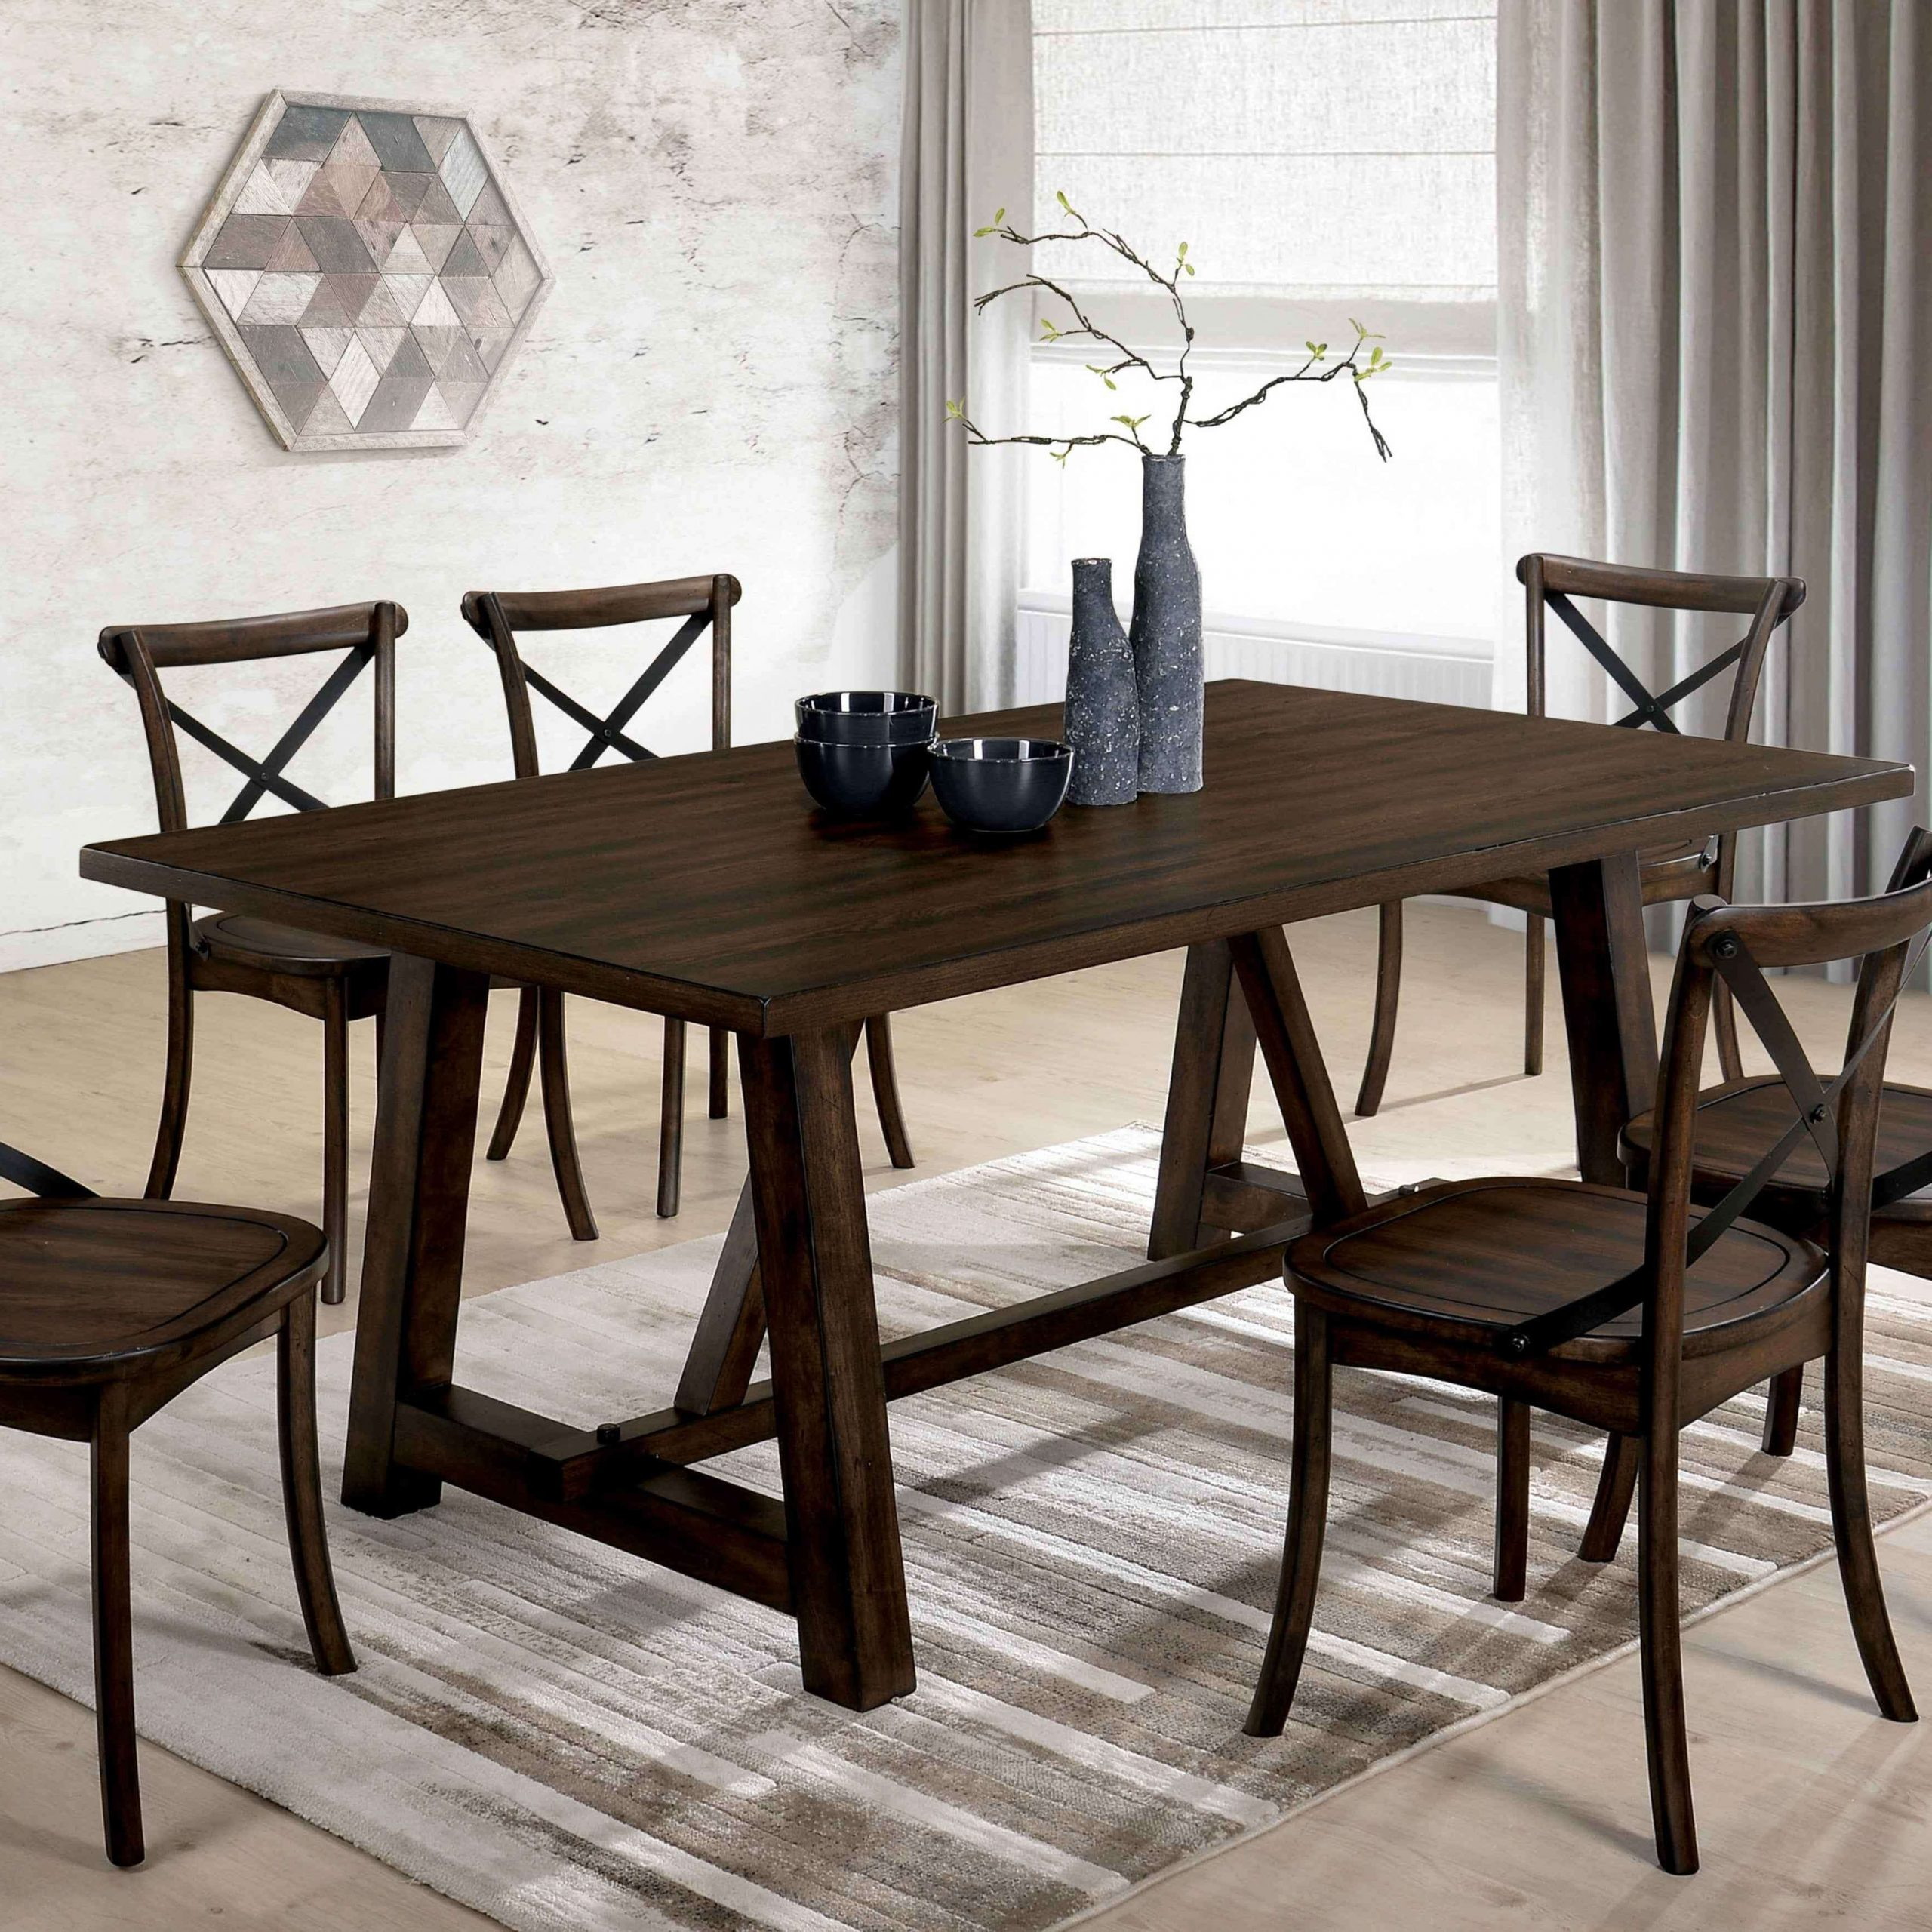 Delectable Furniture Lee Modern Farmhouse Dining Table Oak within Most Current Modern Farmhouse Extending Dining Tables